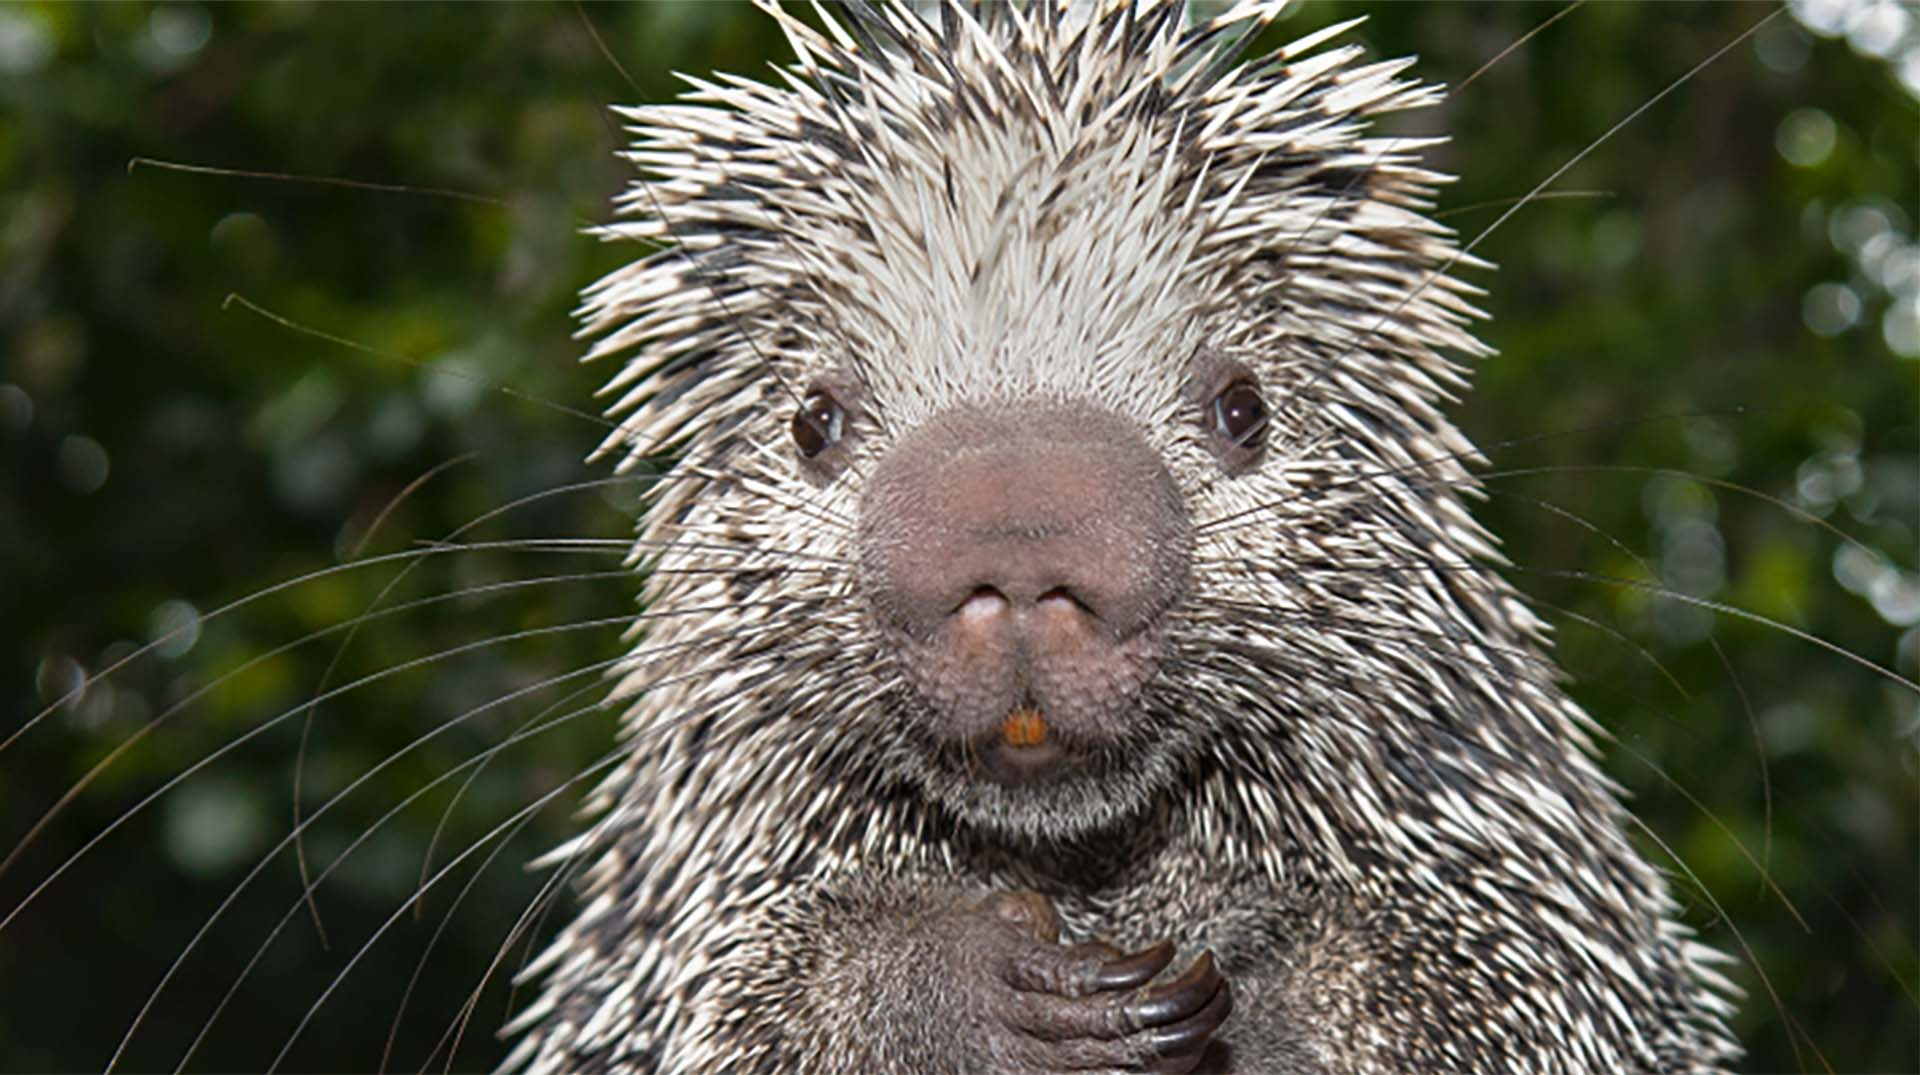 Porcupine quills are essentially hair with a stiff keratin coating